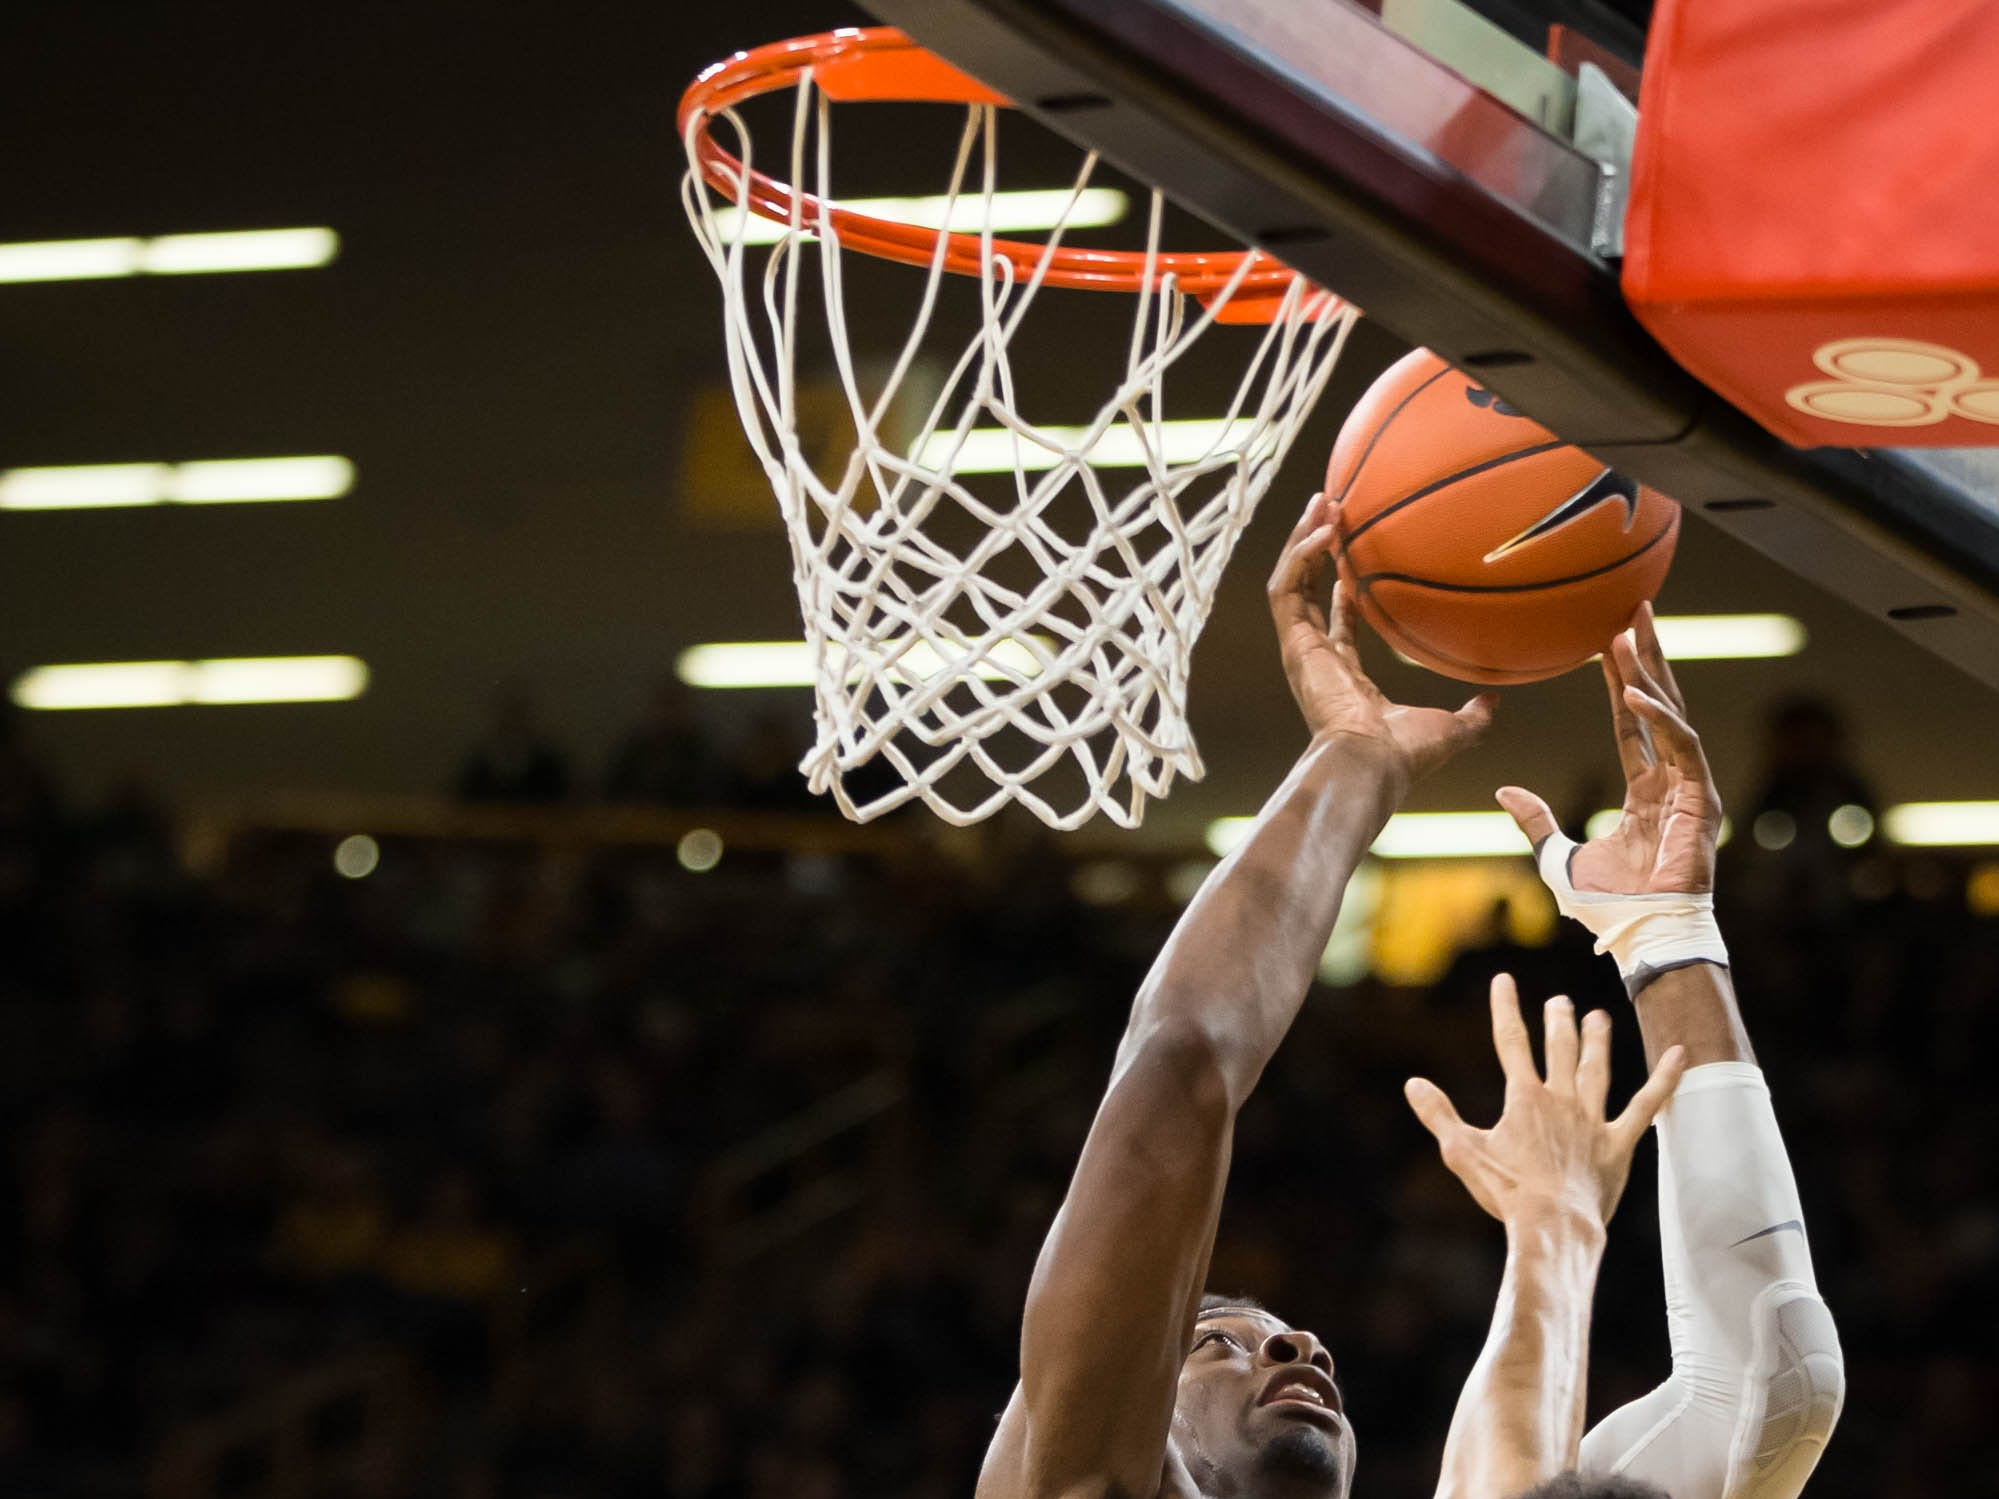 Iowa junior forward Tyler Cook (25) jumps for a layup in the first half at Carver Hawkeye Arena in Iowa City on Tuesday, Dec. 18, 2018.